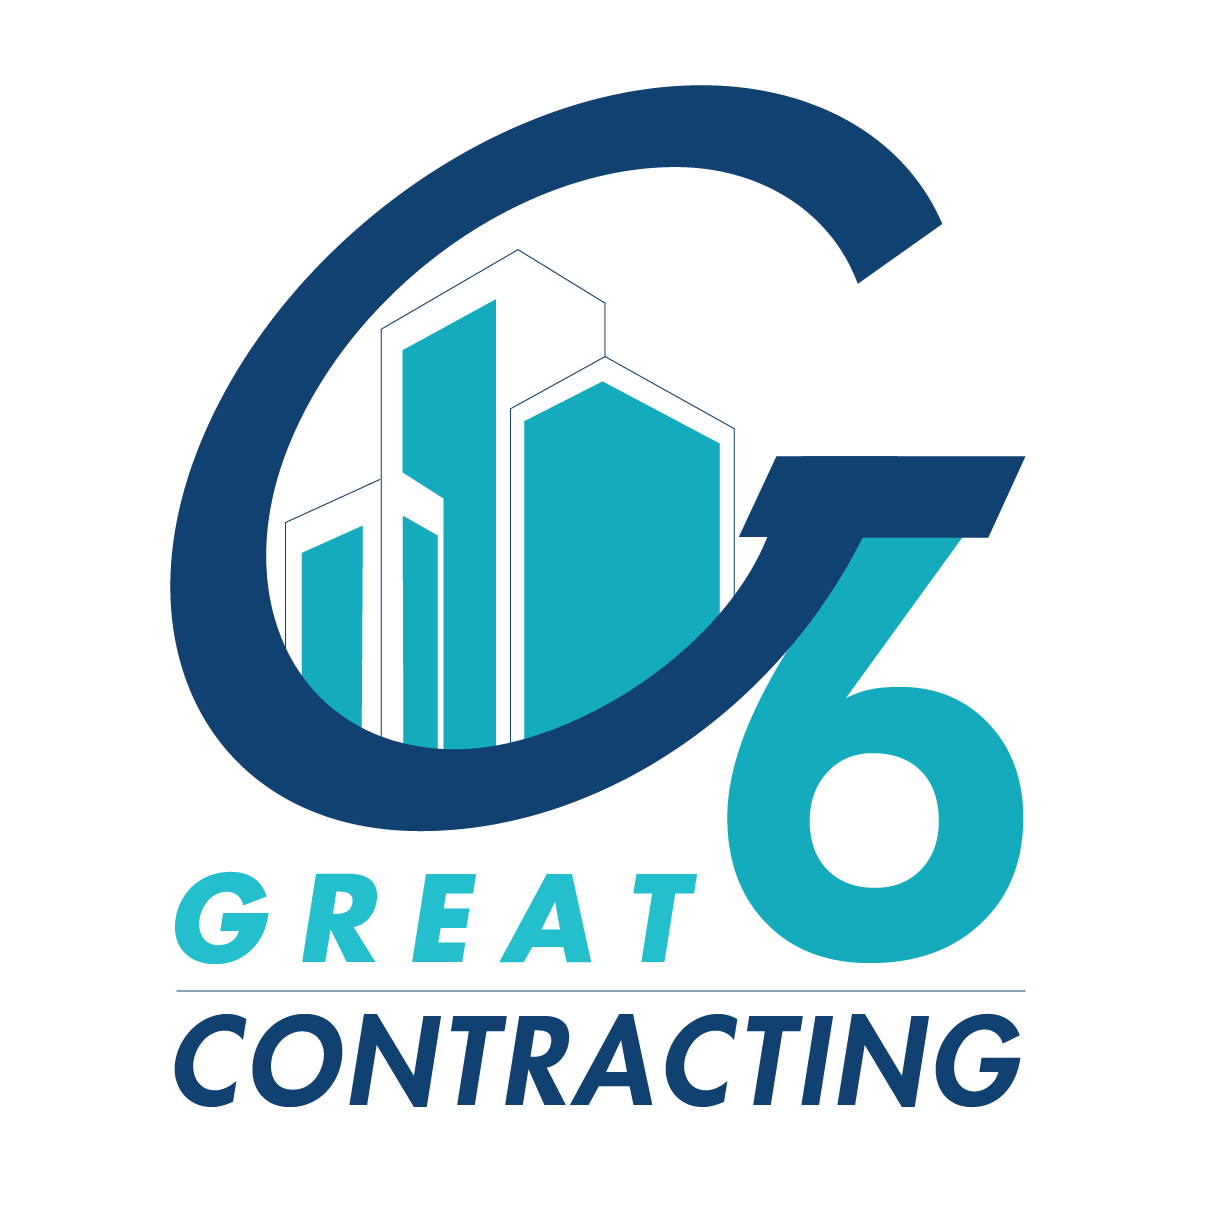 Great6 Contracting